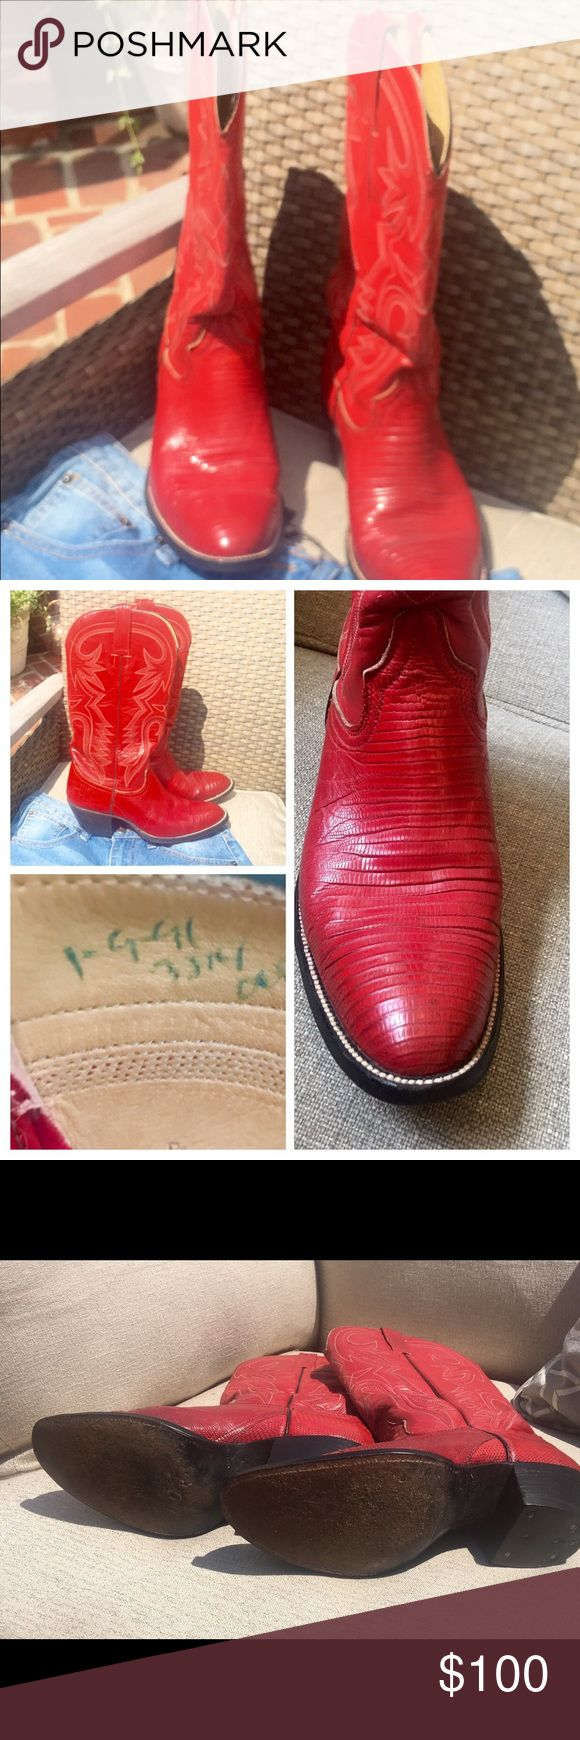 ❤️BJ's Boot Company Women's Red Cowboy Boots Up for sale are a very gently used pair of BJ's Western Store, Cooksville, TN Women's Red Leather W/ Beautiful details Cowboy Boots. I have done research to try to see why these are extra special. If you look at the pictures they are numbered and signed. The Cowboy Boots are custom made for someone.  They are dated, numbered and signed.  Please check their website and FB page for further details .The boots are in excellent condition and needs a…